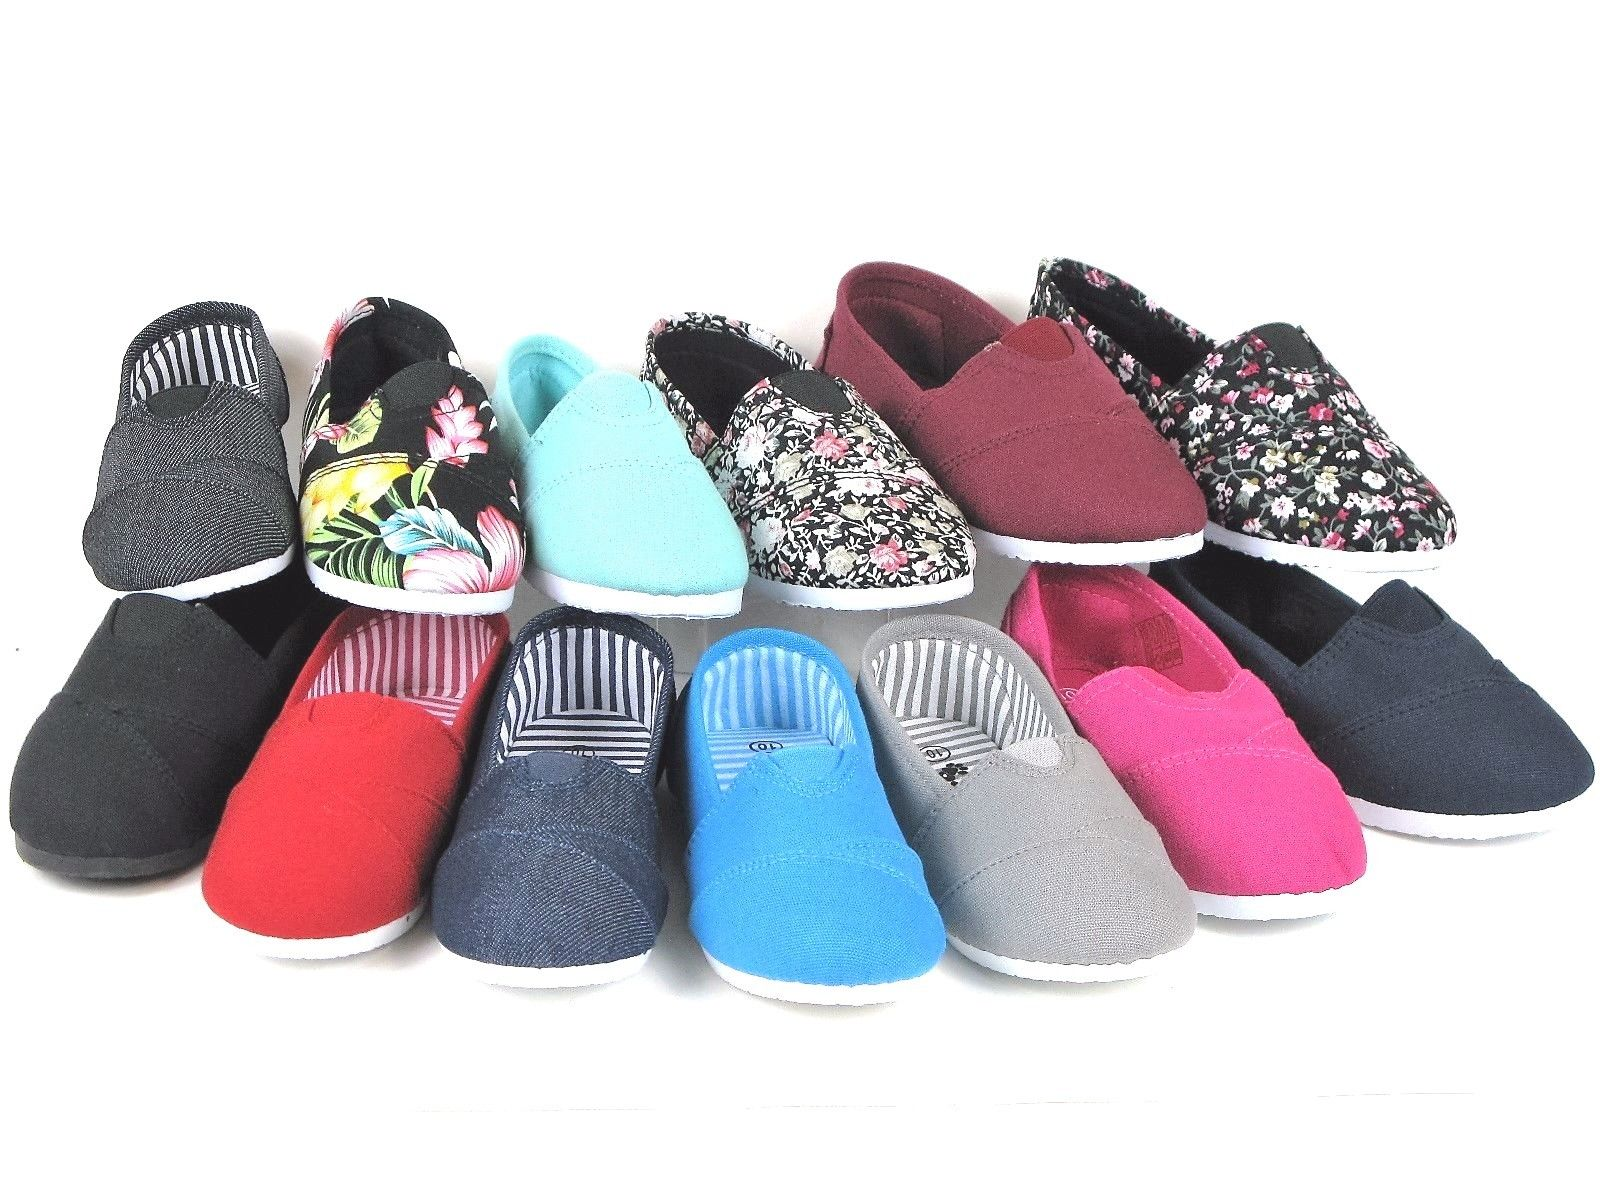 New Kids Boys Girls Simple Canvas Slip-On Shoes Flats Loafers 13 Colors Size 9-4